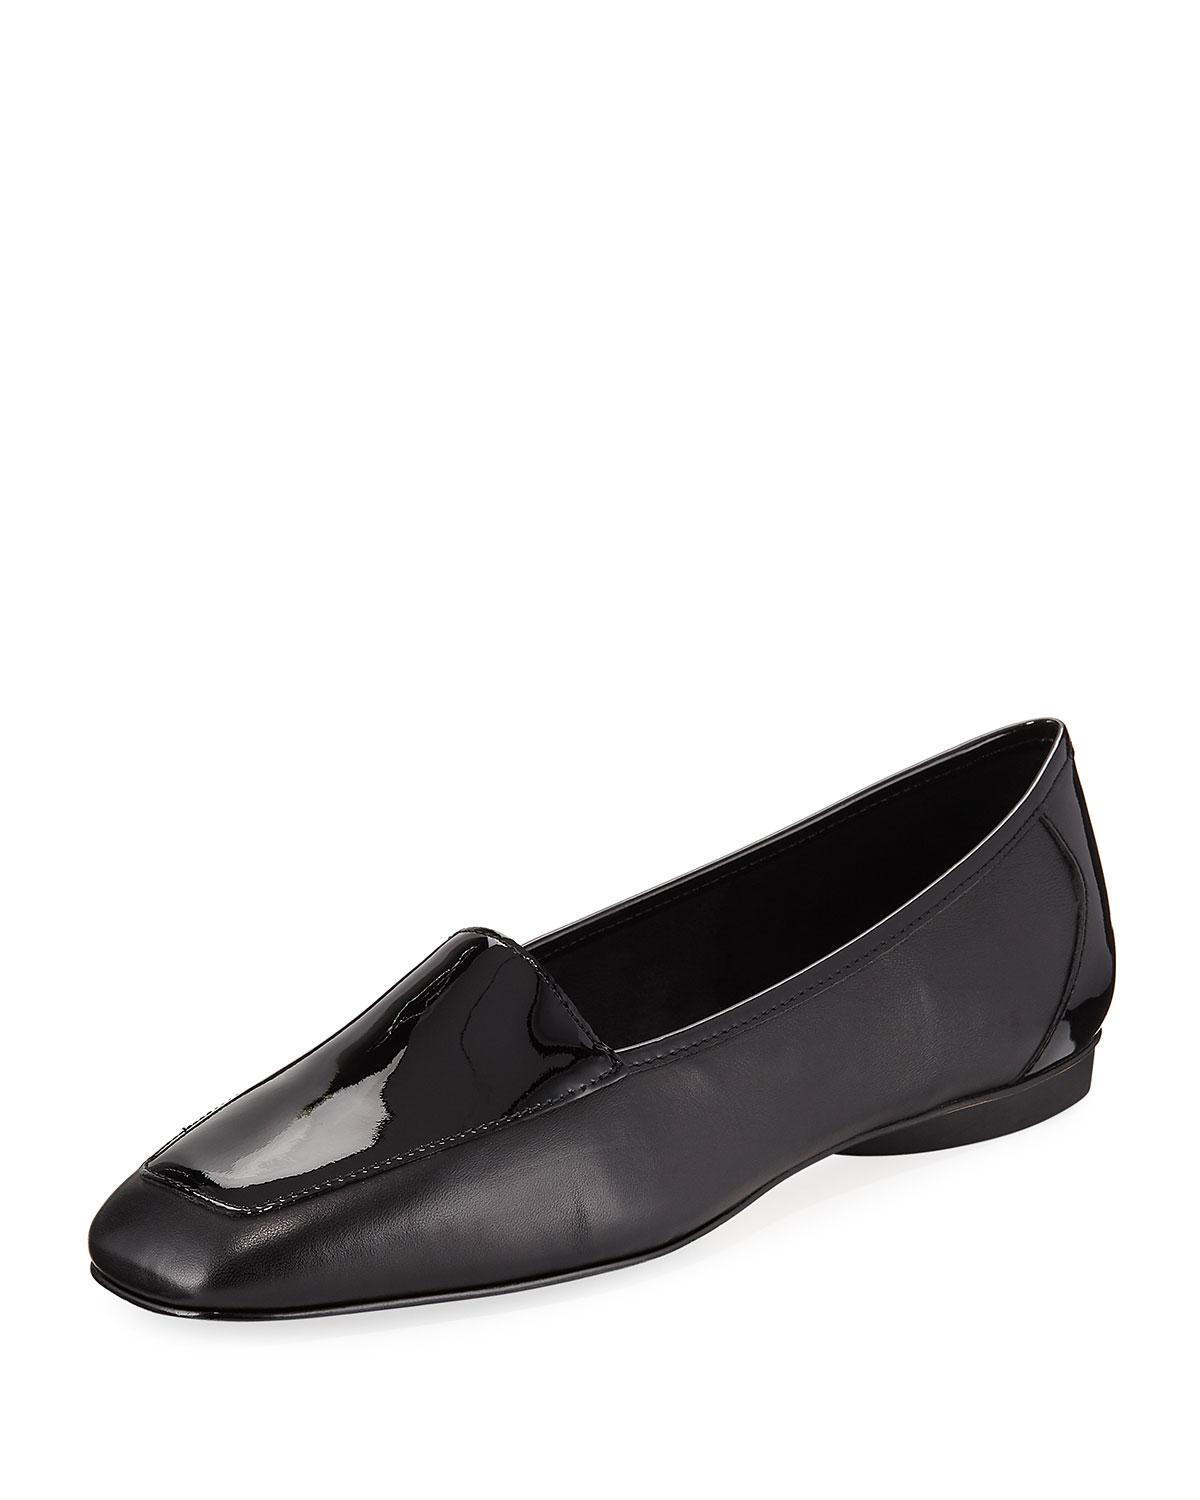 Donald Pliner Deedee Patent Leather Loafers D9xfW